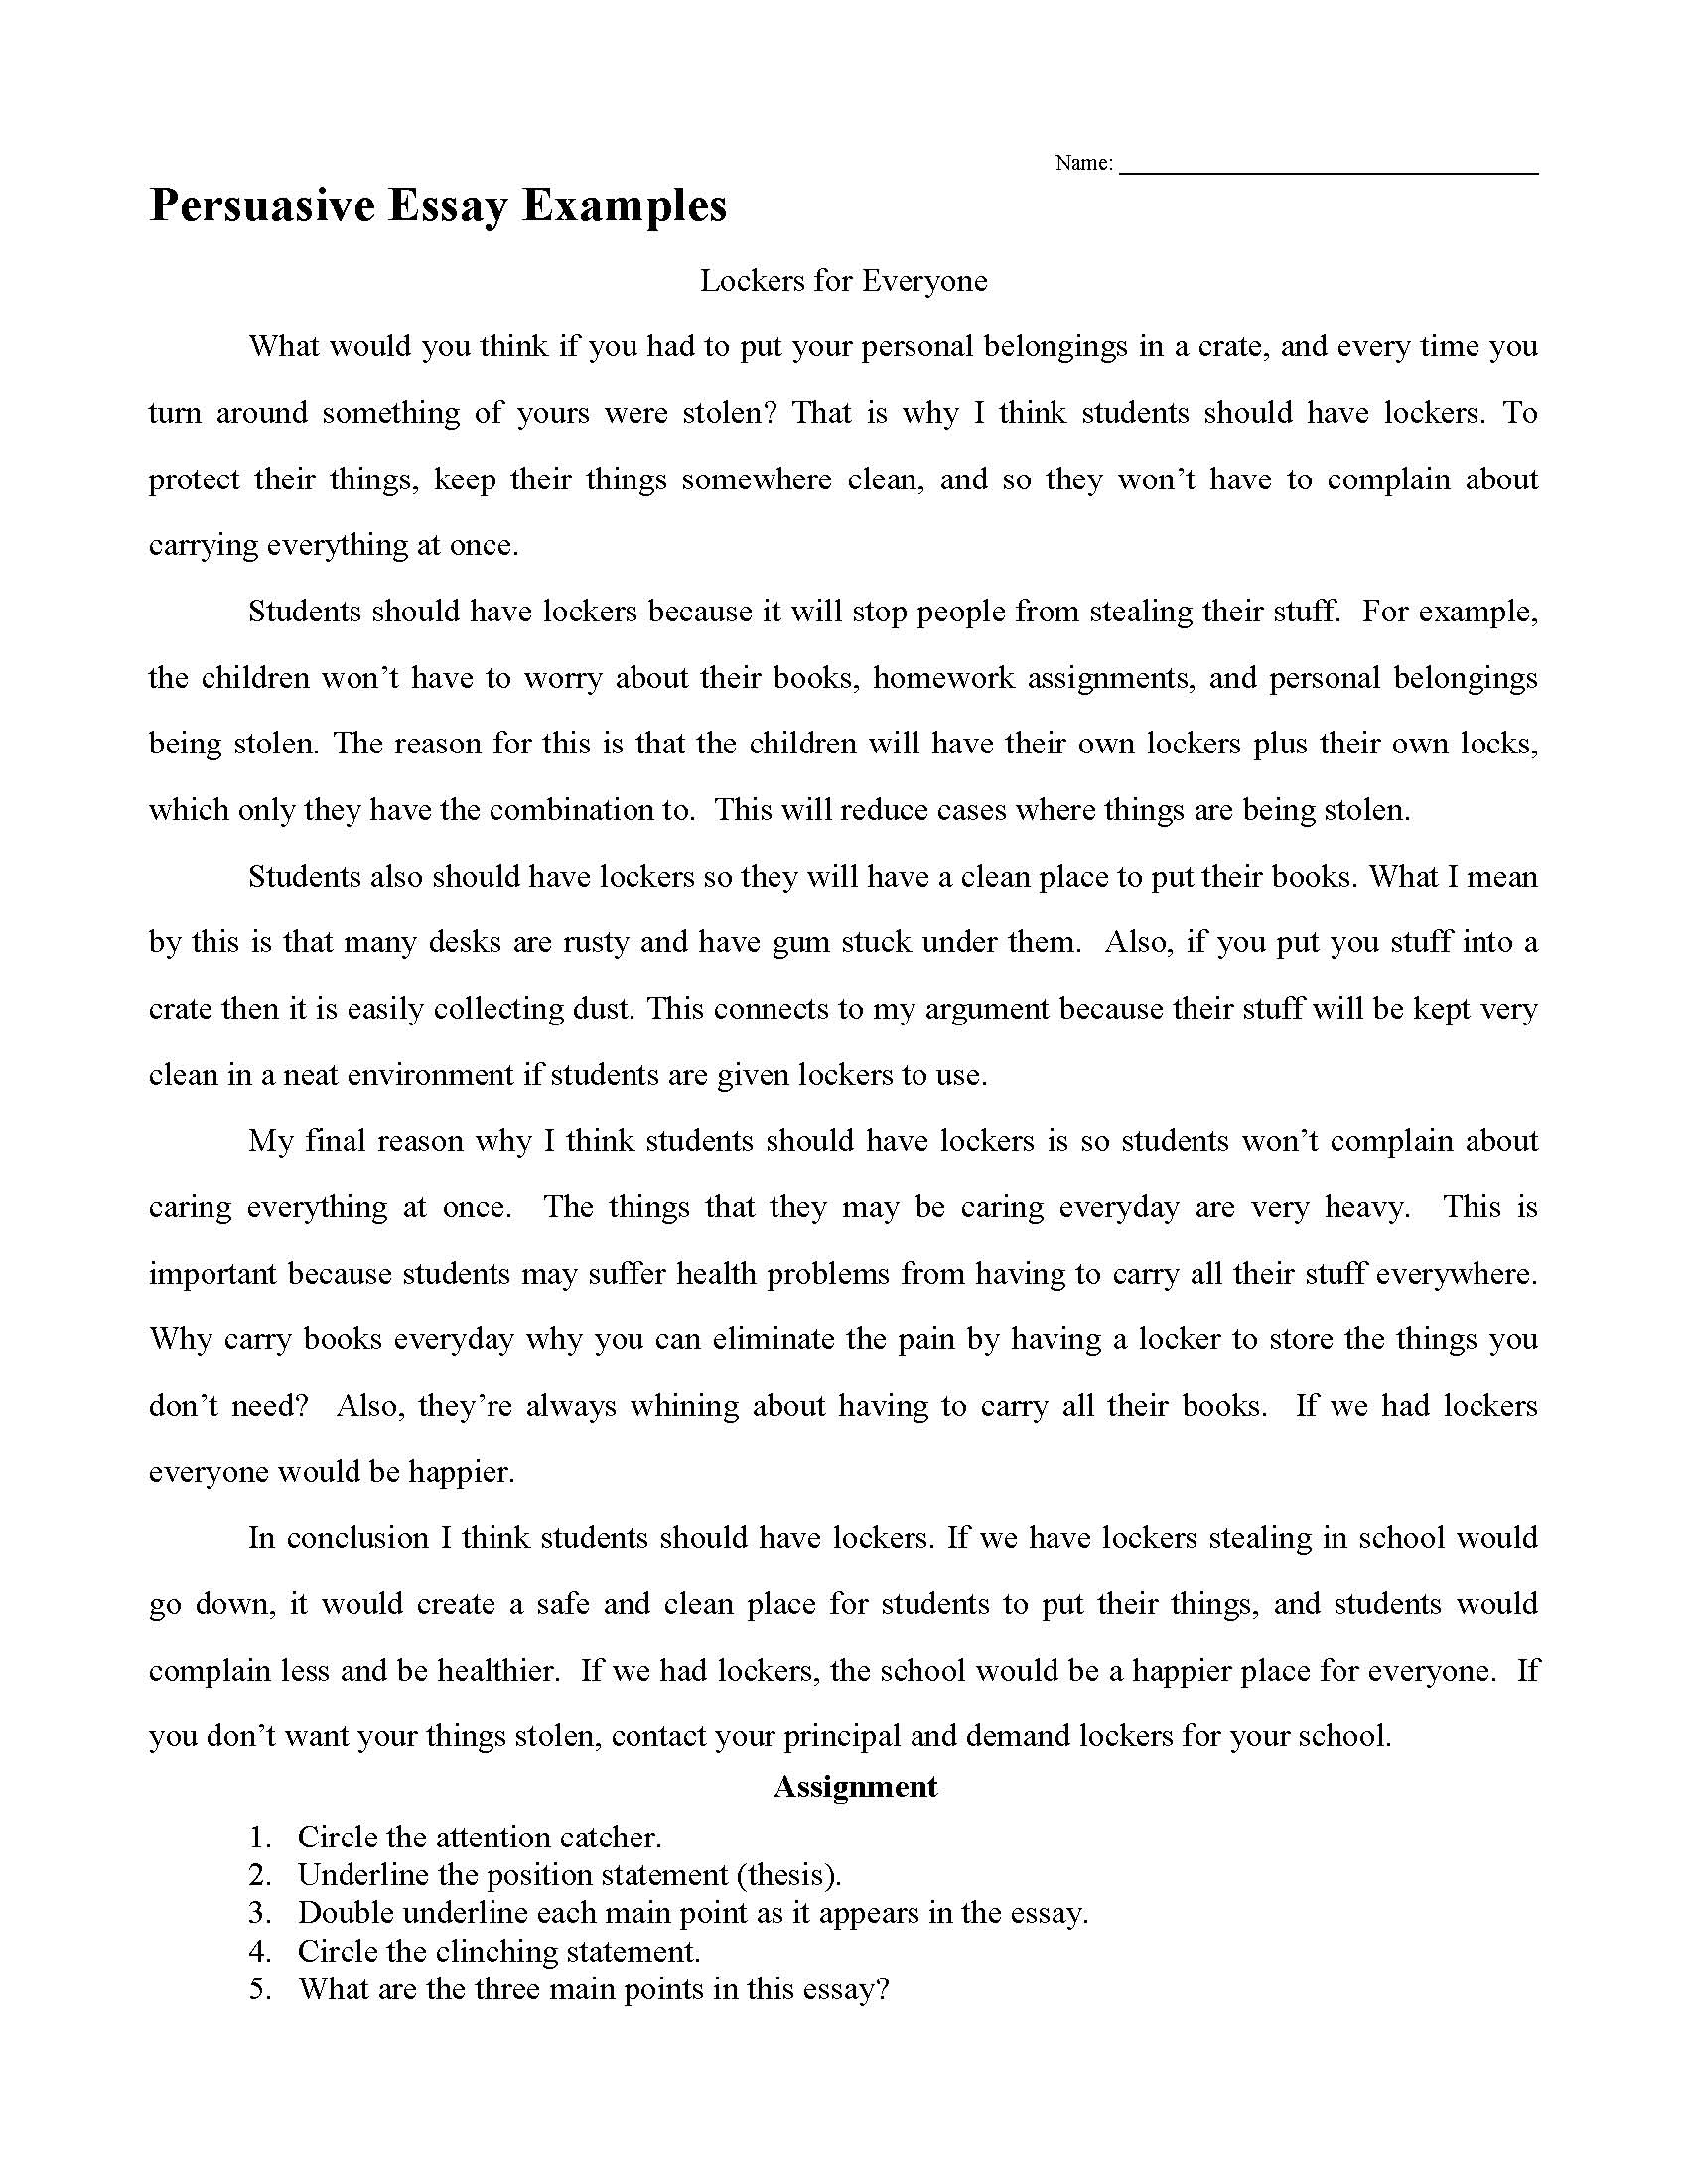 001 Examples Of Persuasive Essays Essay Example Excellent 5th Grade Written By Graders Argumentative-persuasive Topics Full